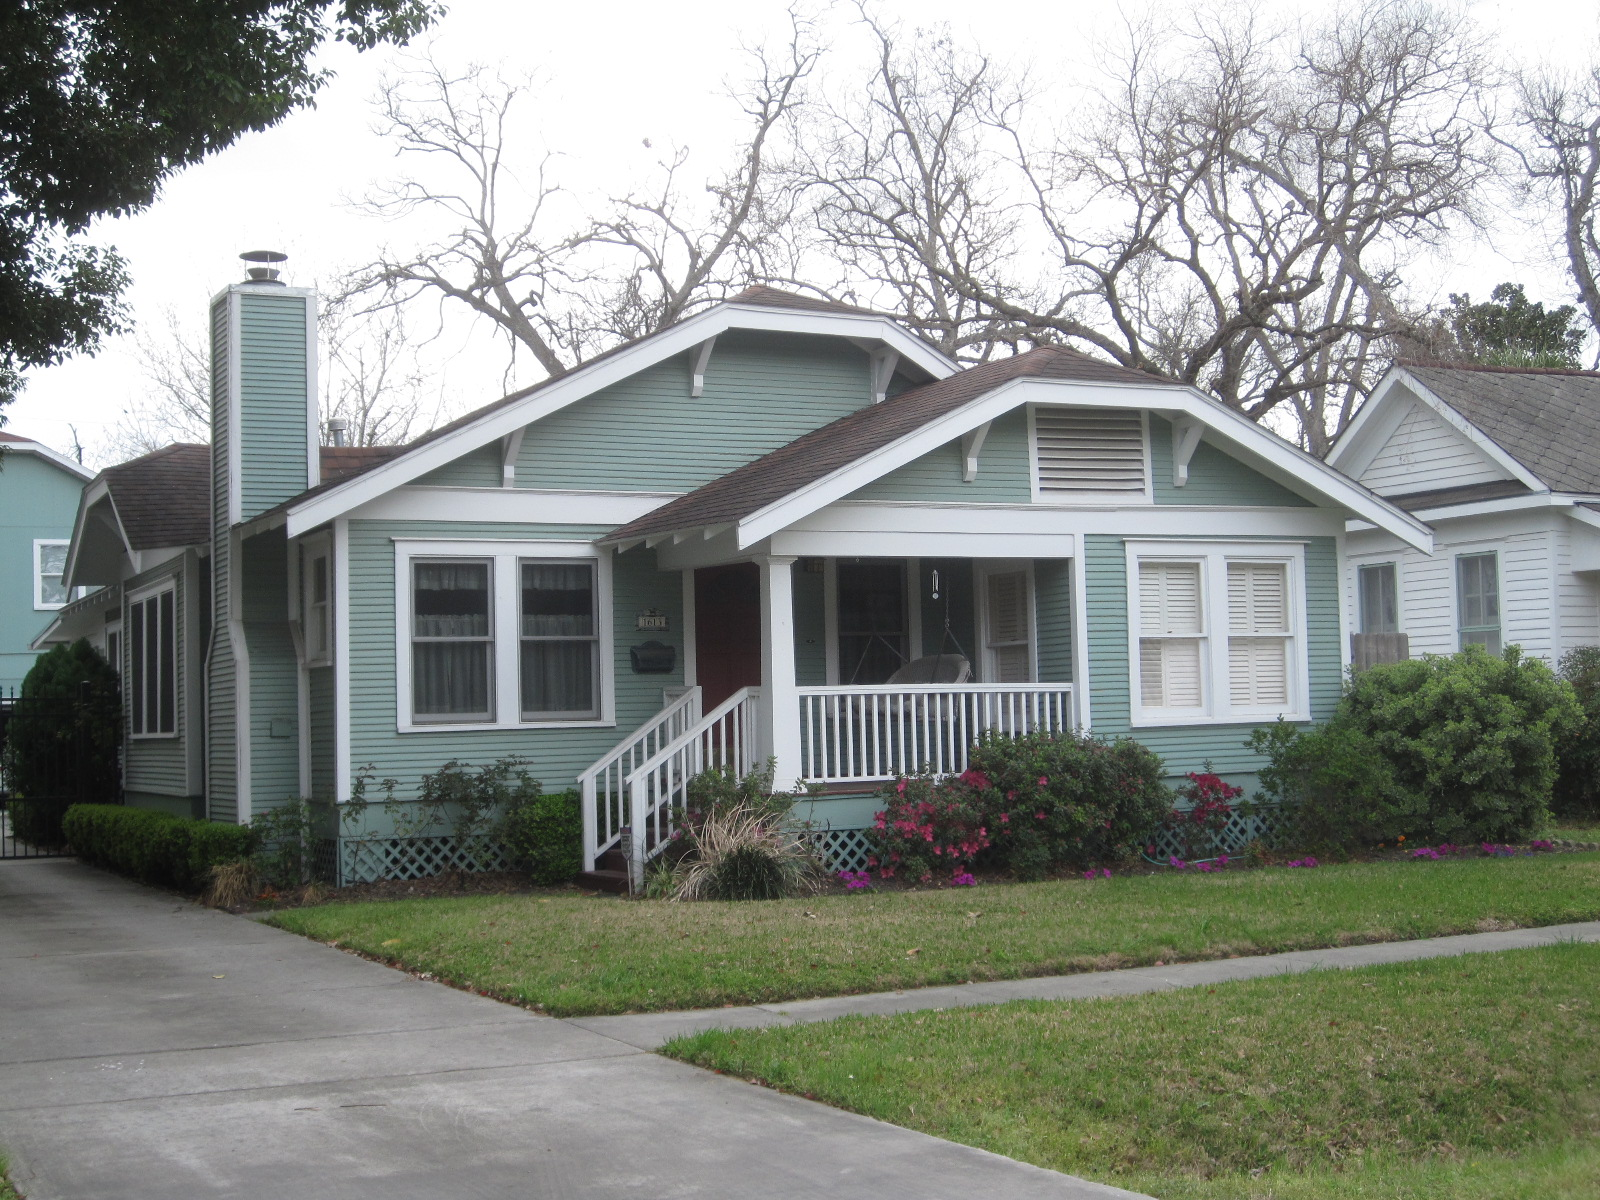 The OtHeR HoUsToN: BUNGALOW COLORS